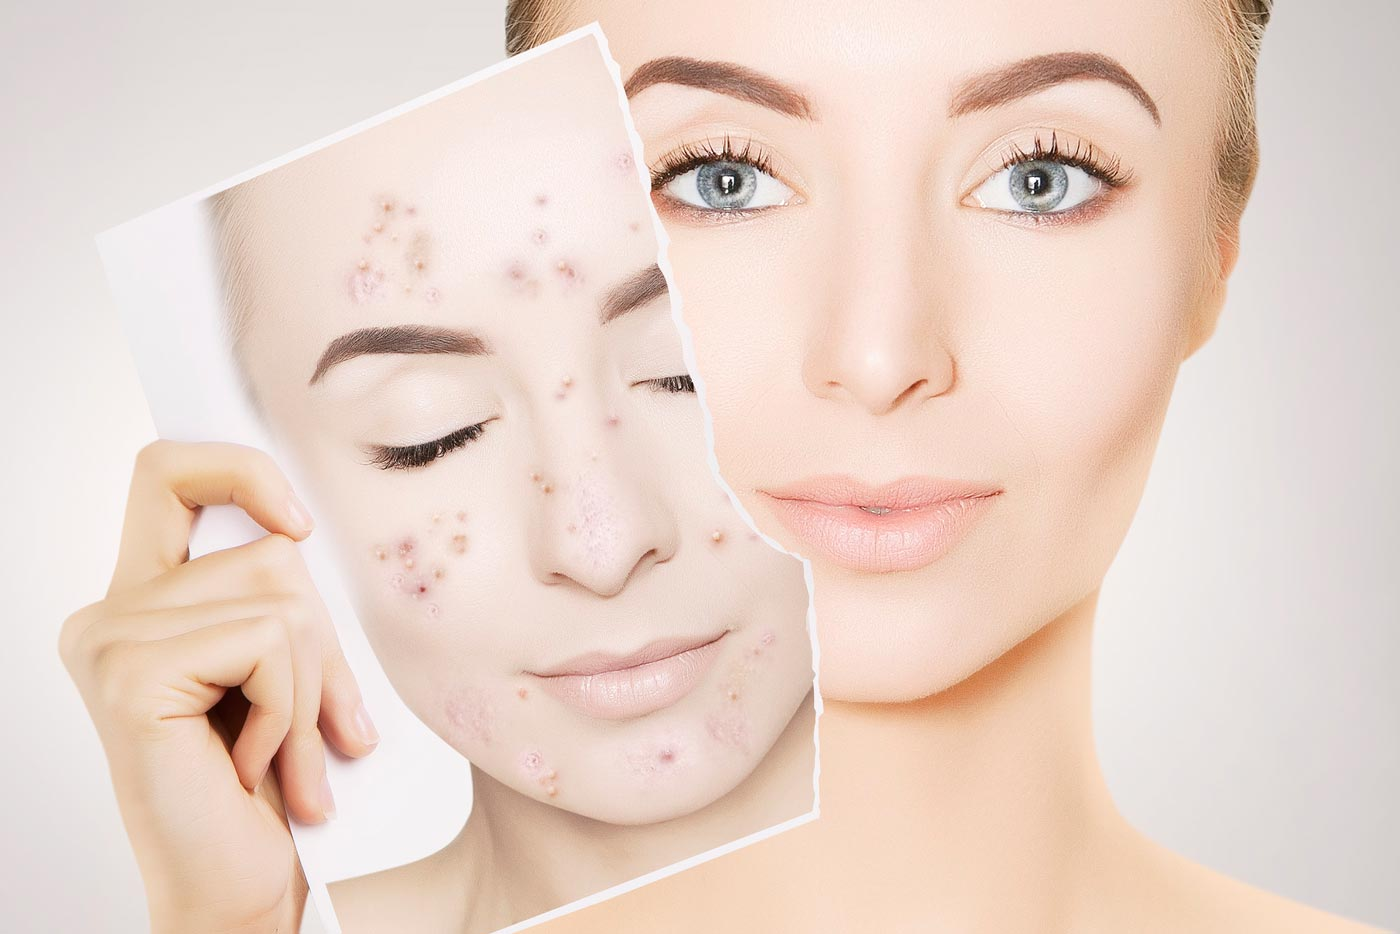 A woman holds a photograph of the state of her skin where her face used to be full of acne. Now her face is acne-free and her skin is in excellent condition.